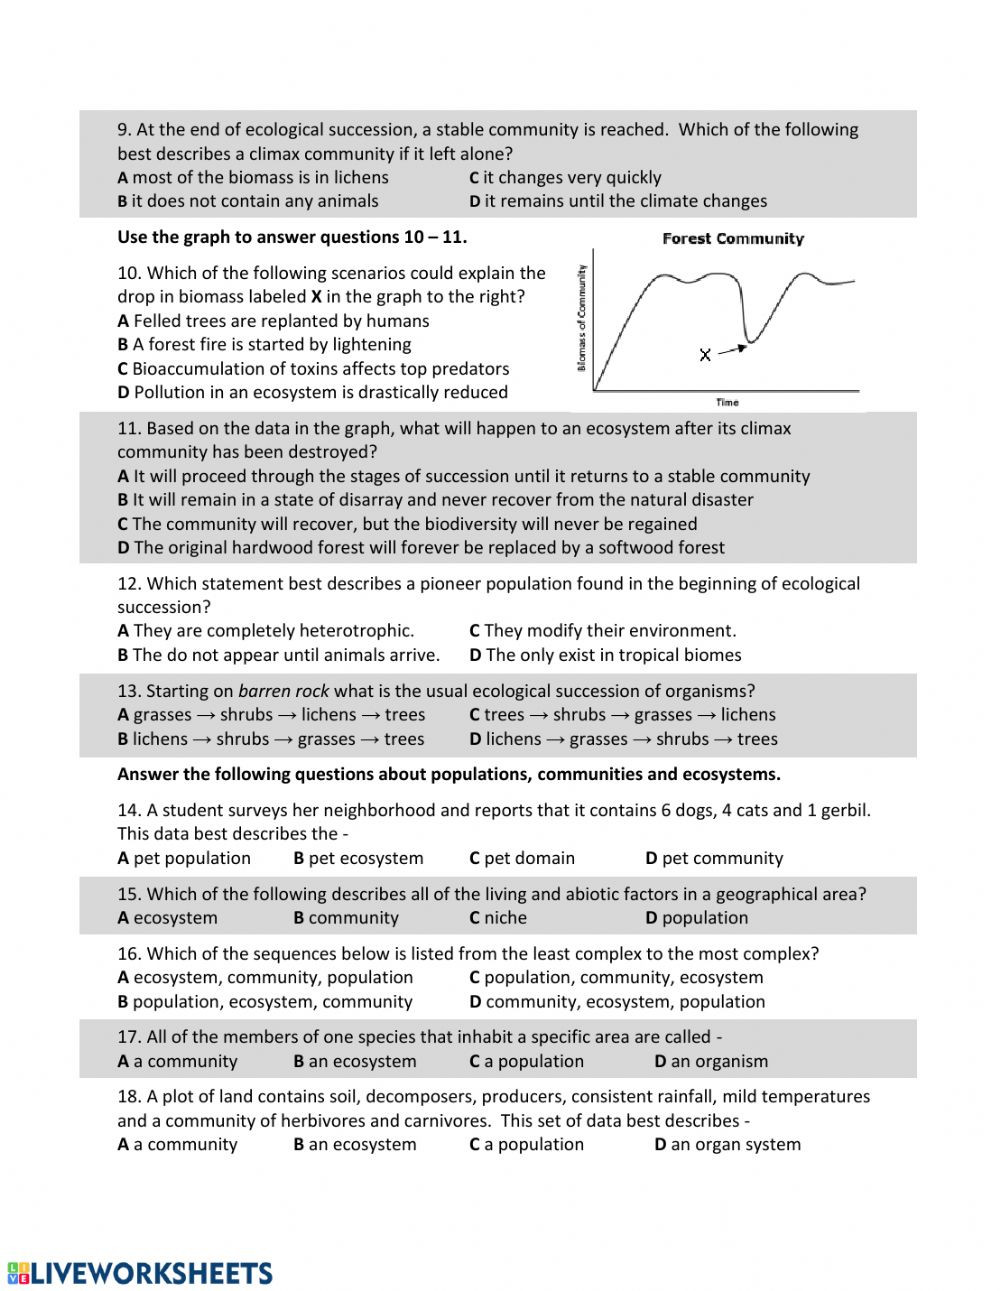 Ecological Succession Worksheet Answers Es Eco Succession Part 2 Interactive Worksheet